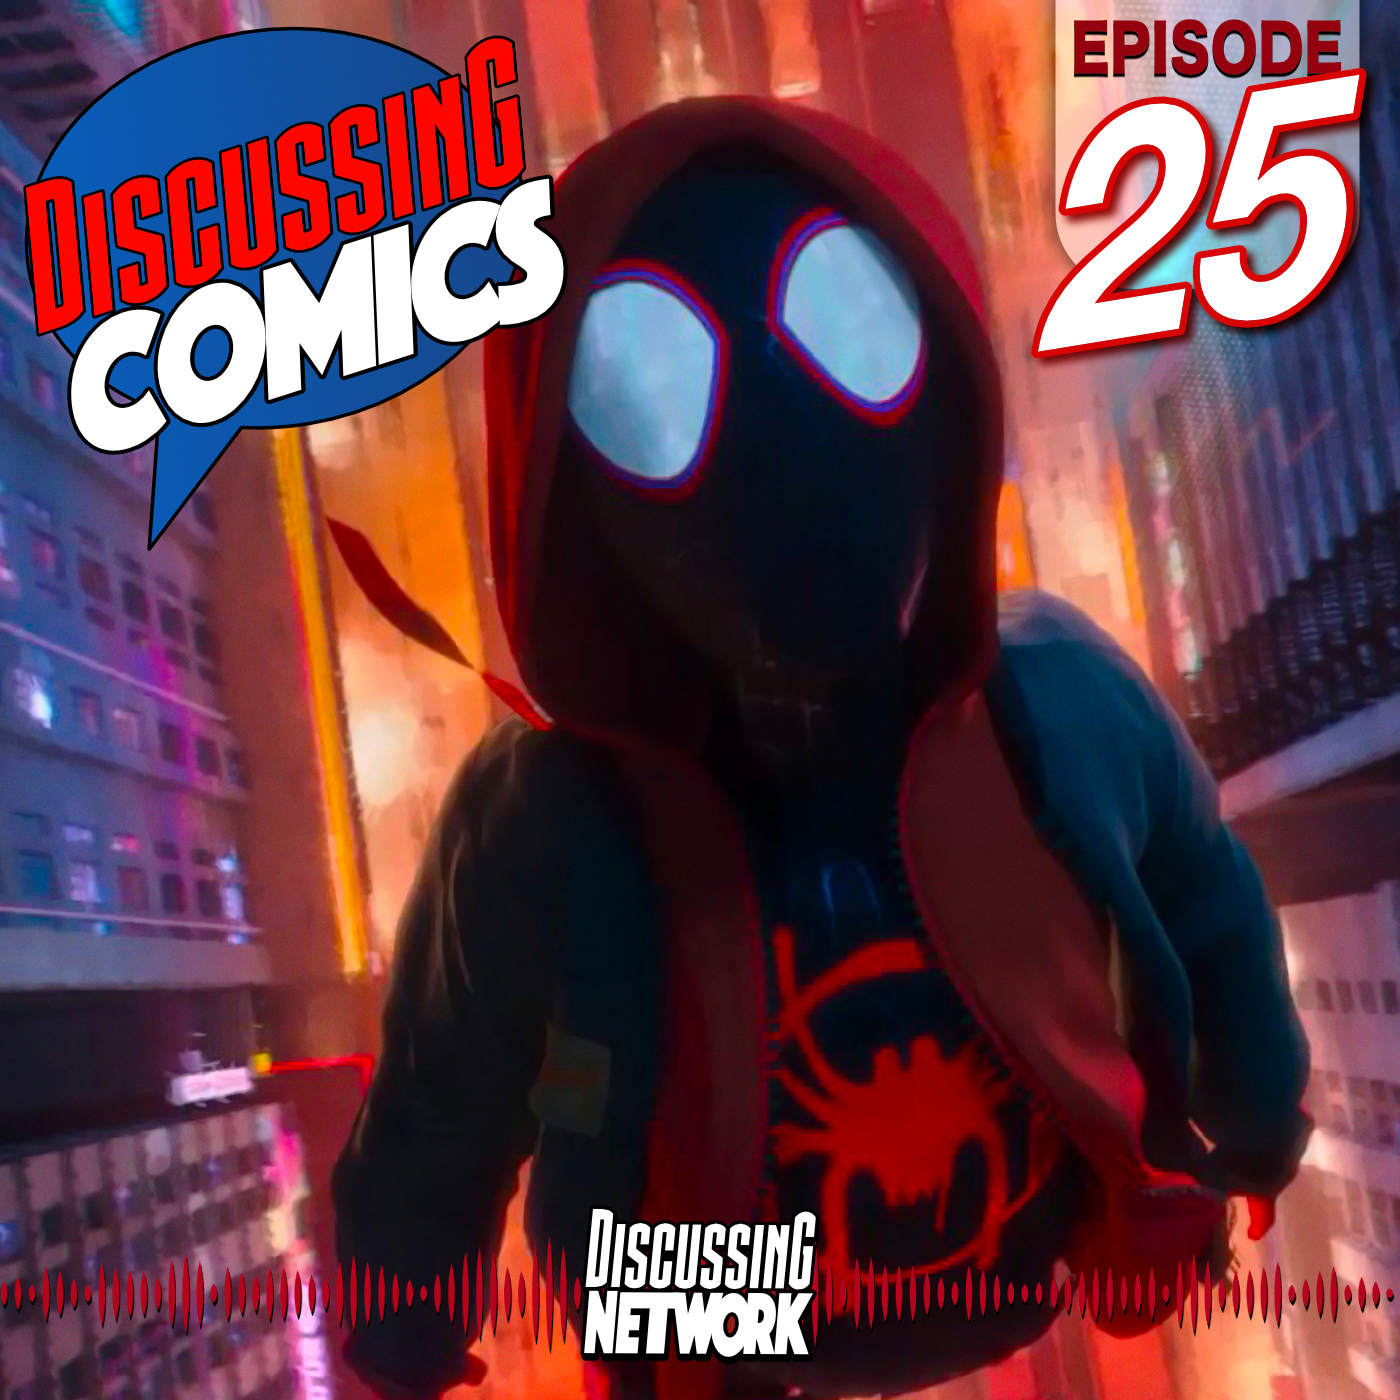 Review of Spider-Man Into the Spider-Verse